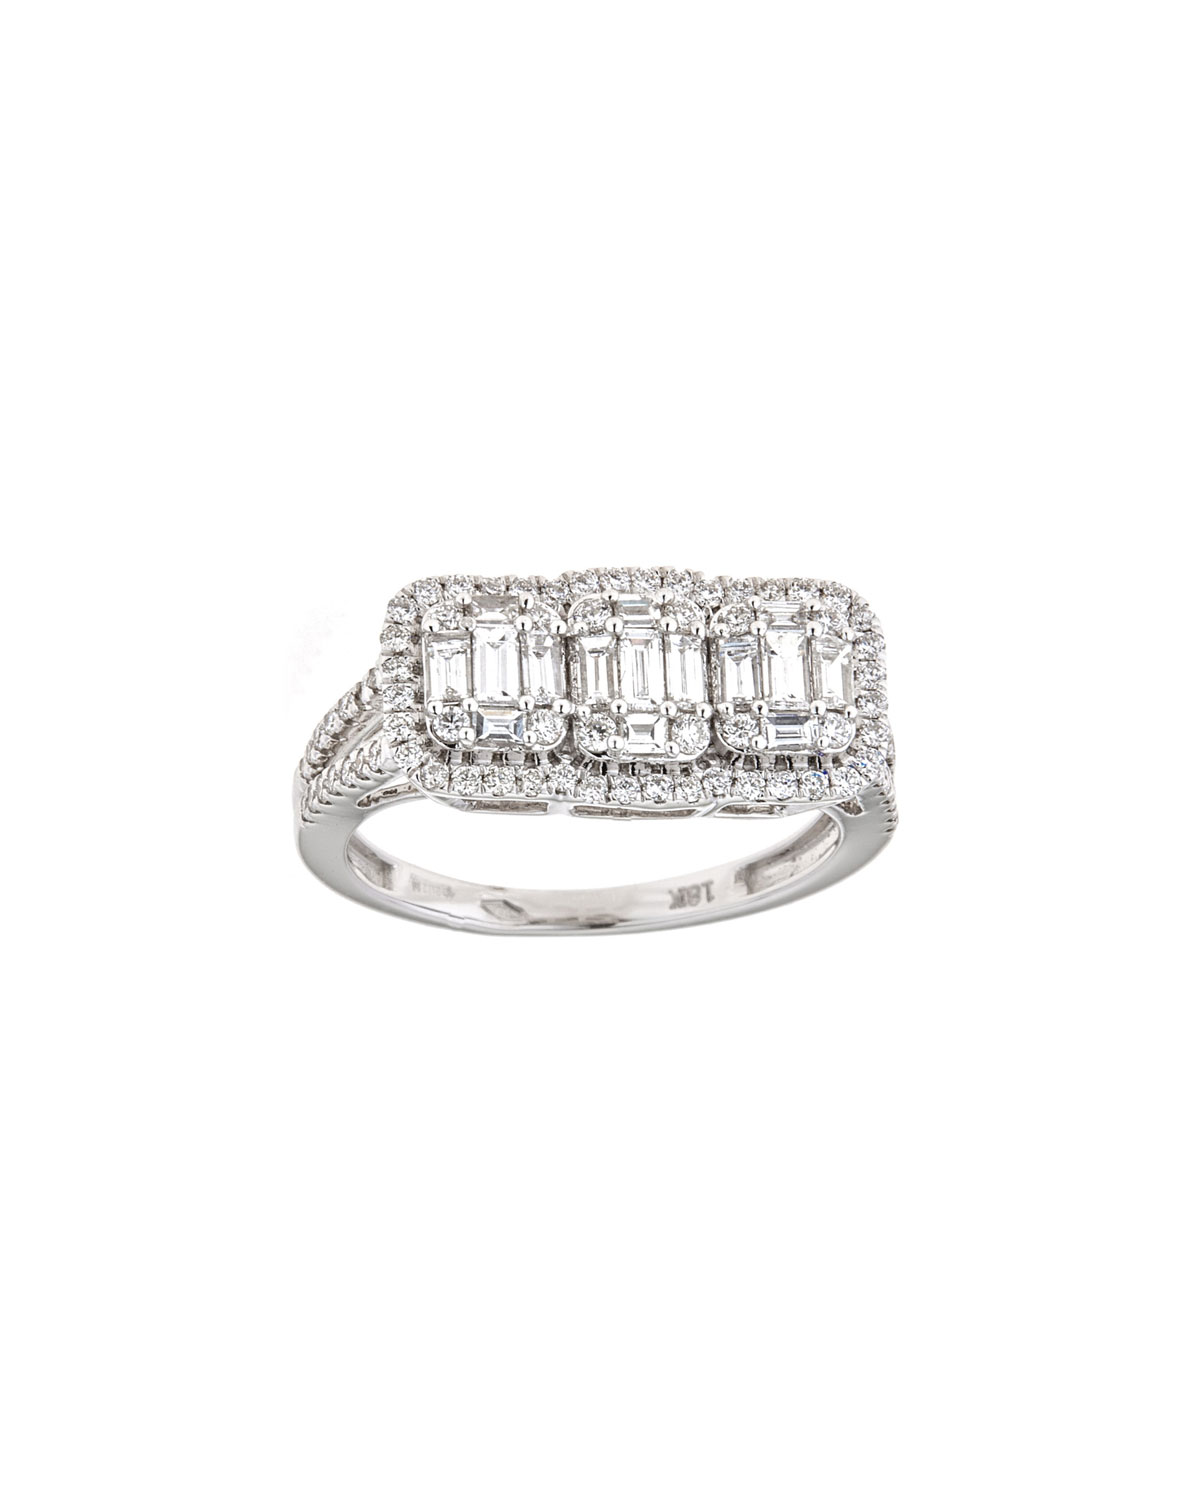 ZYDO Mosaic 18K White Gold Diamond Trio & Outline Ring